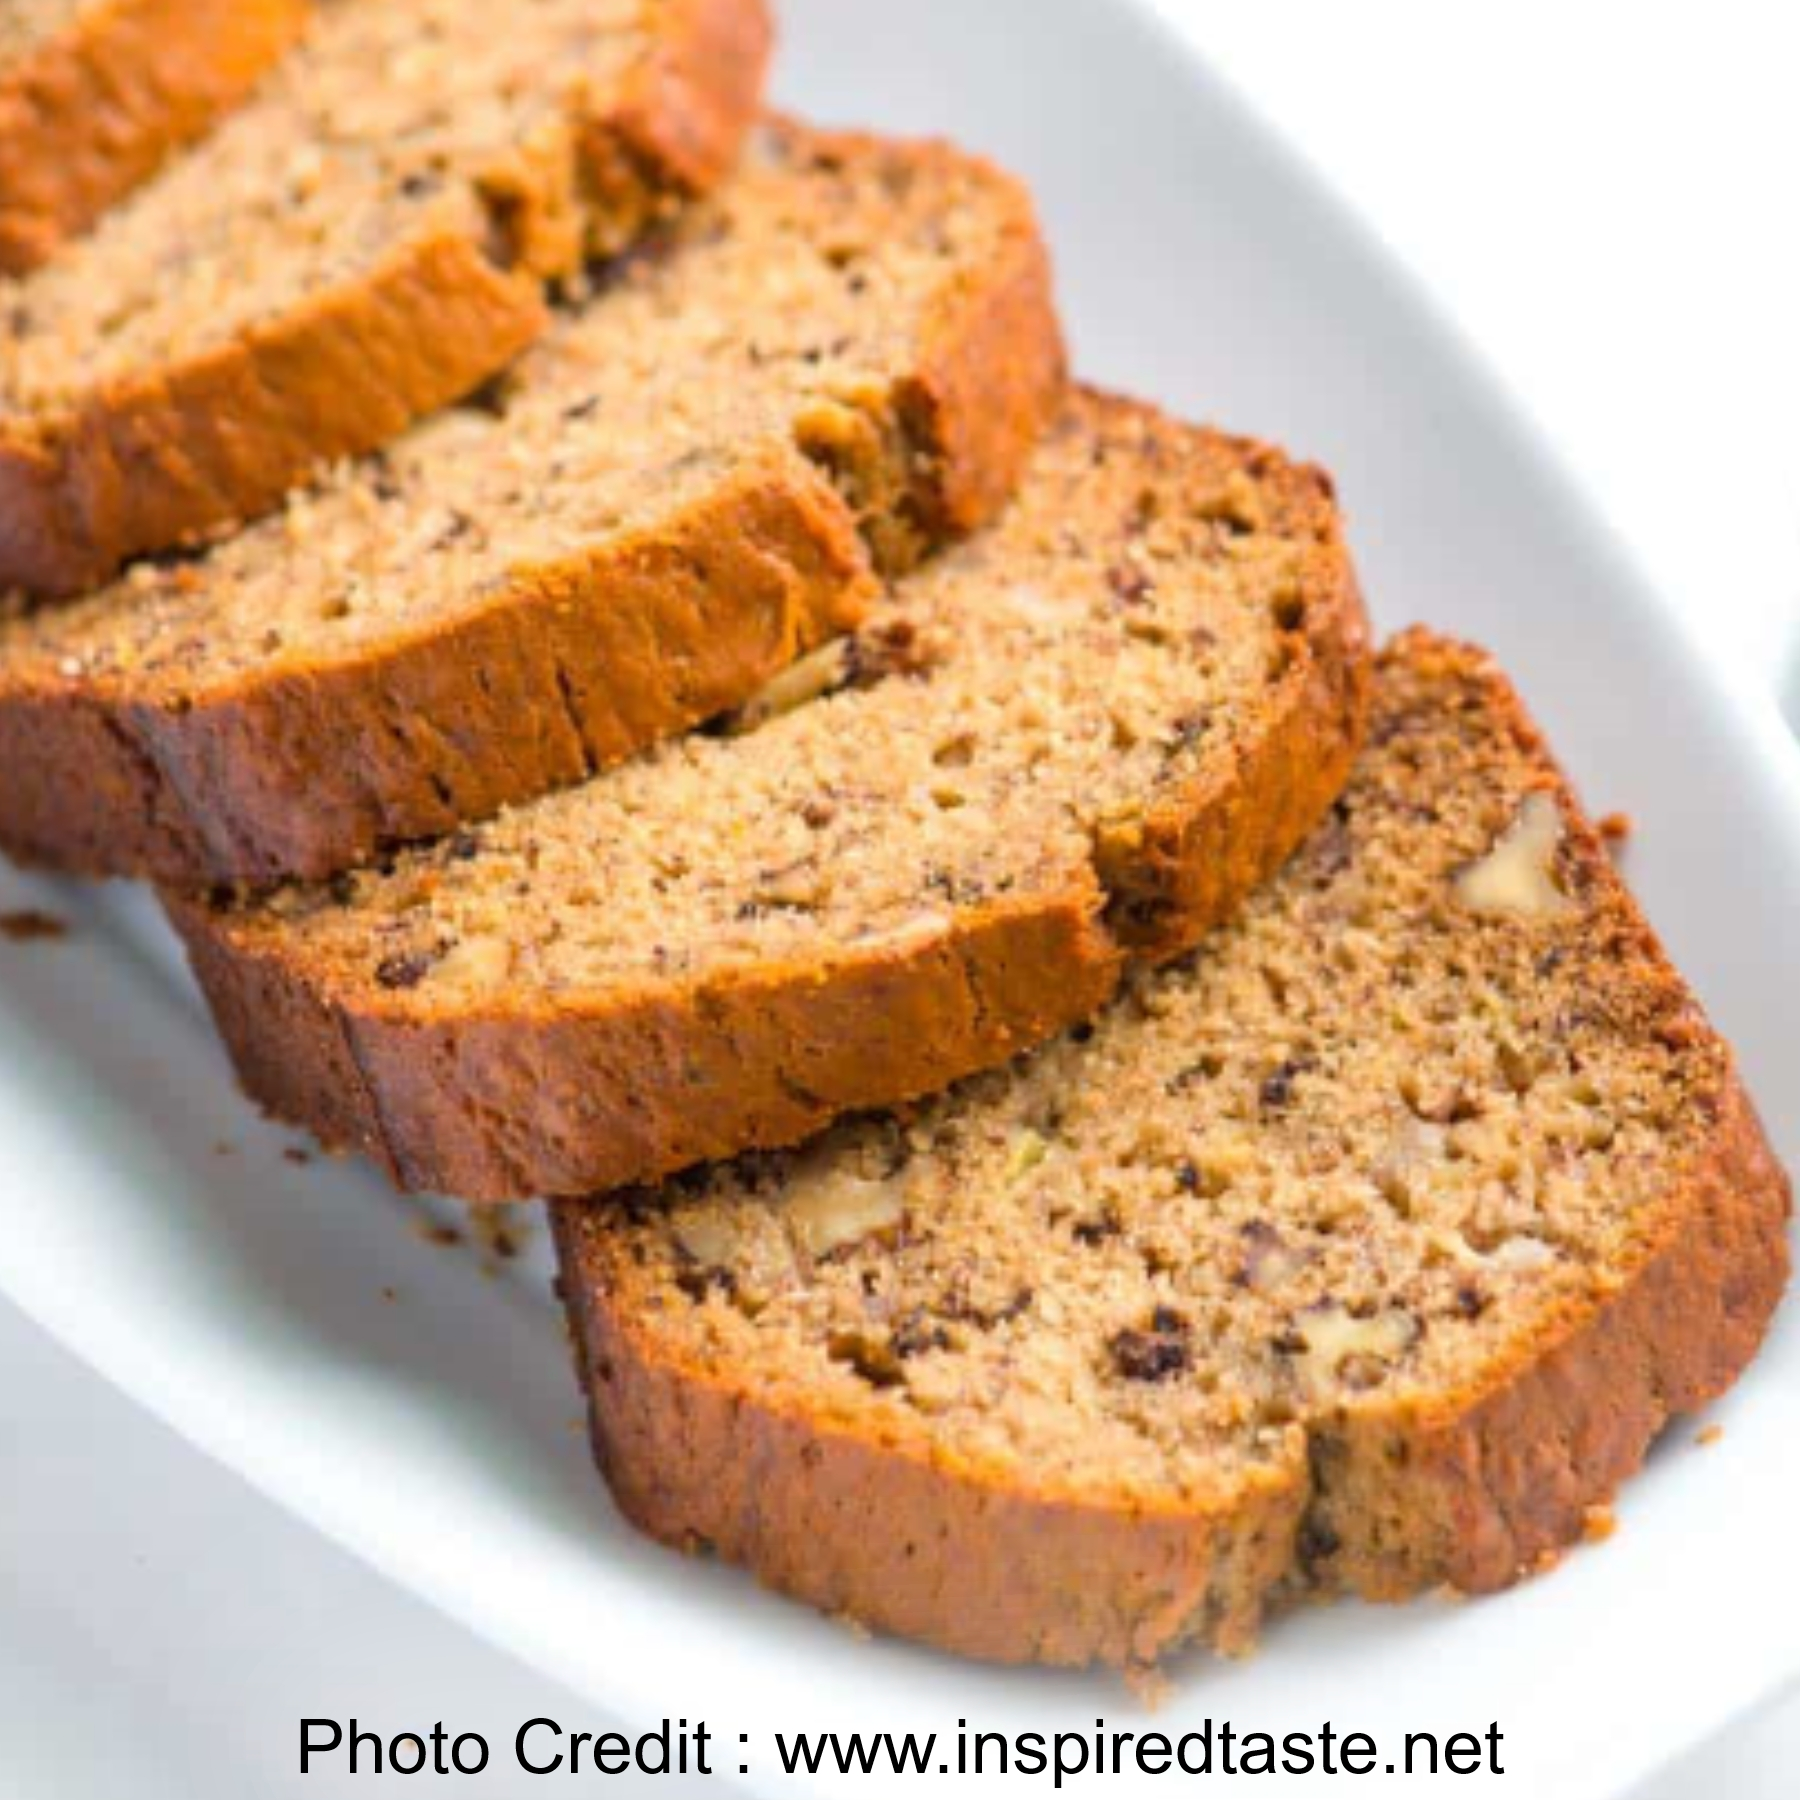 Banana Bread from Inspired Taste